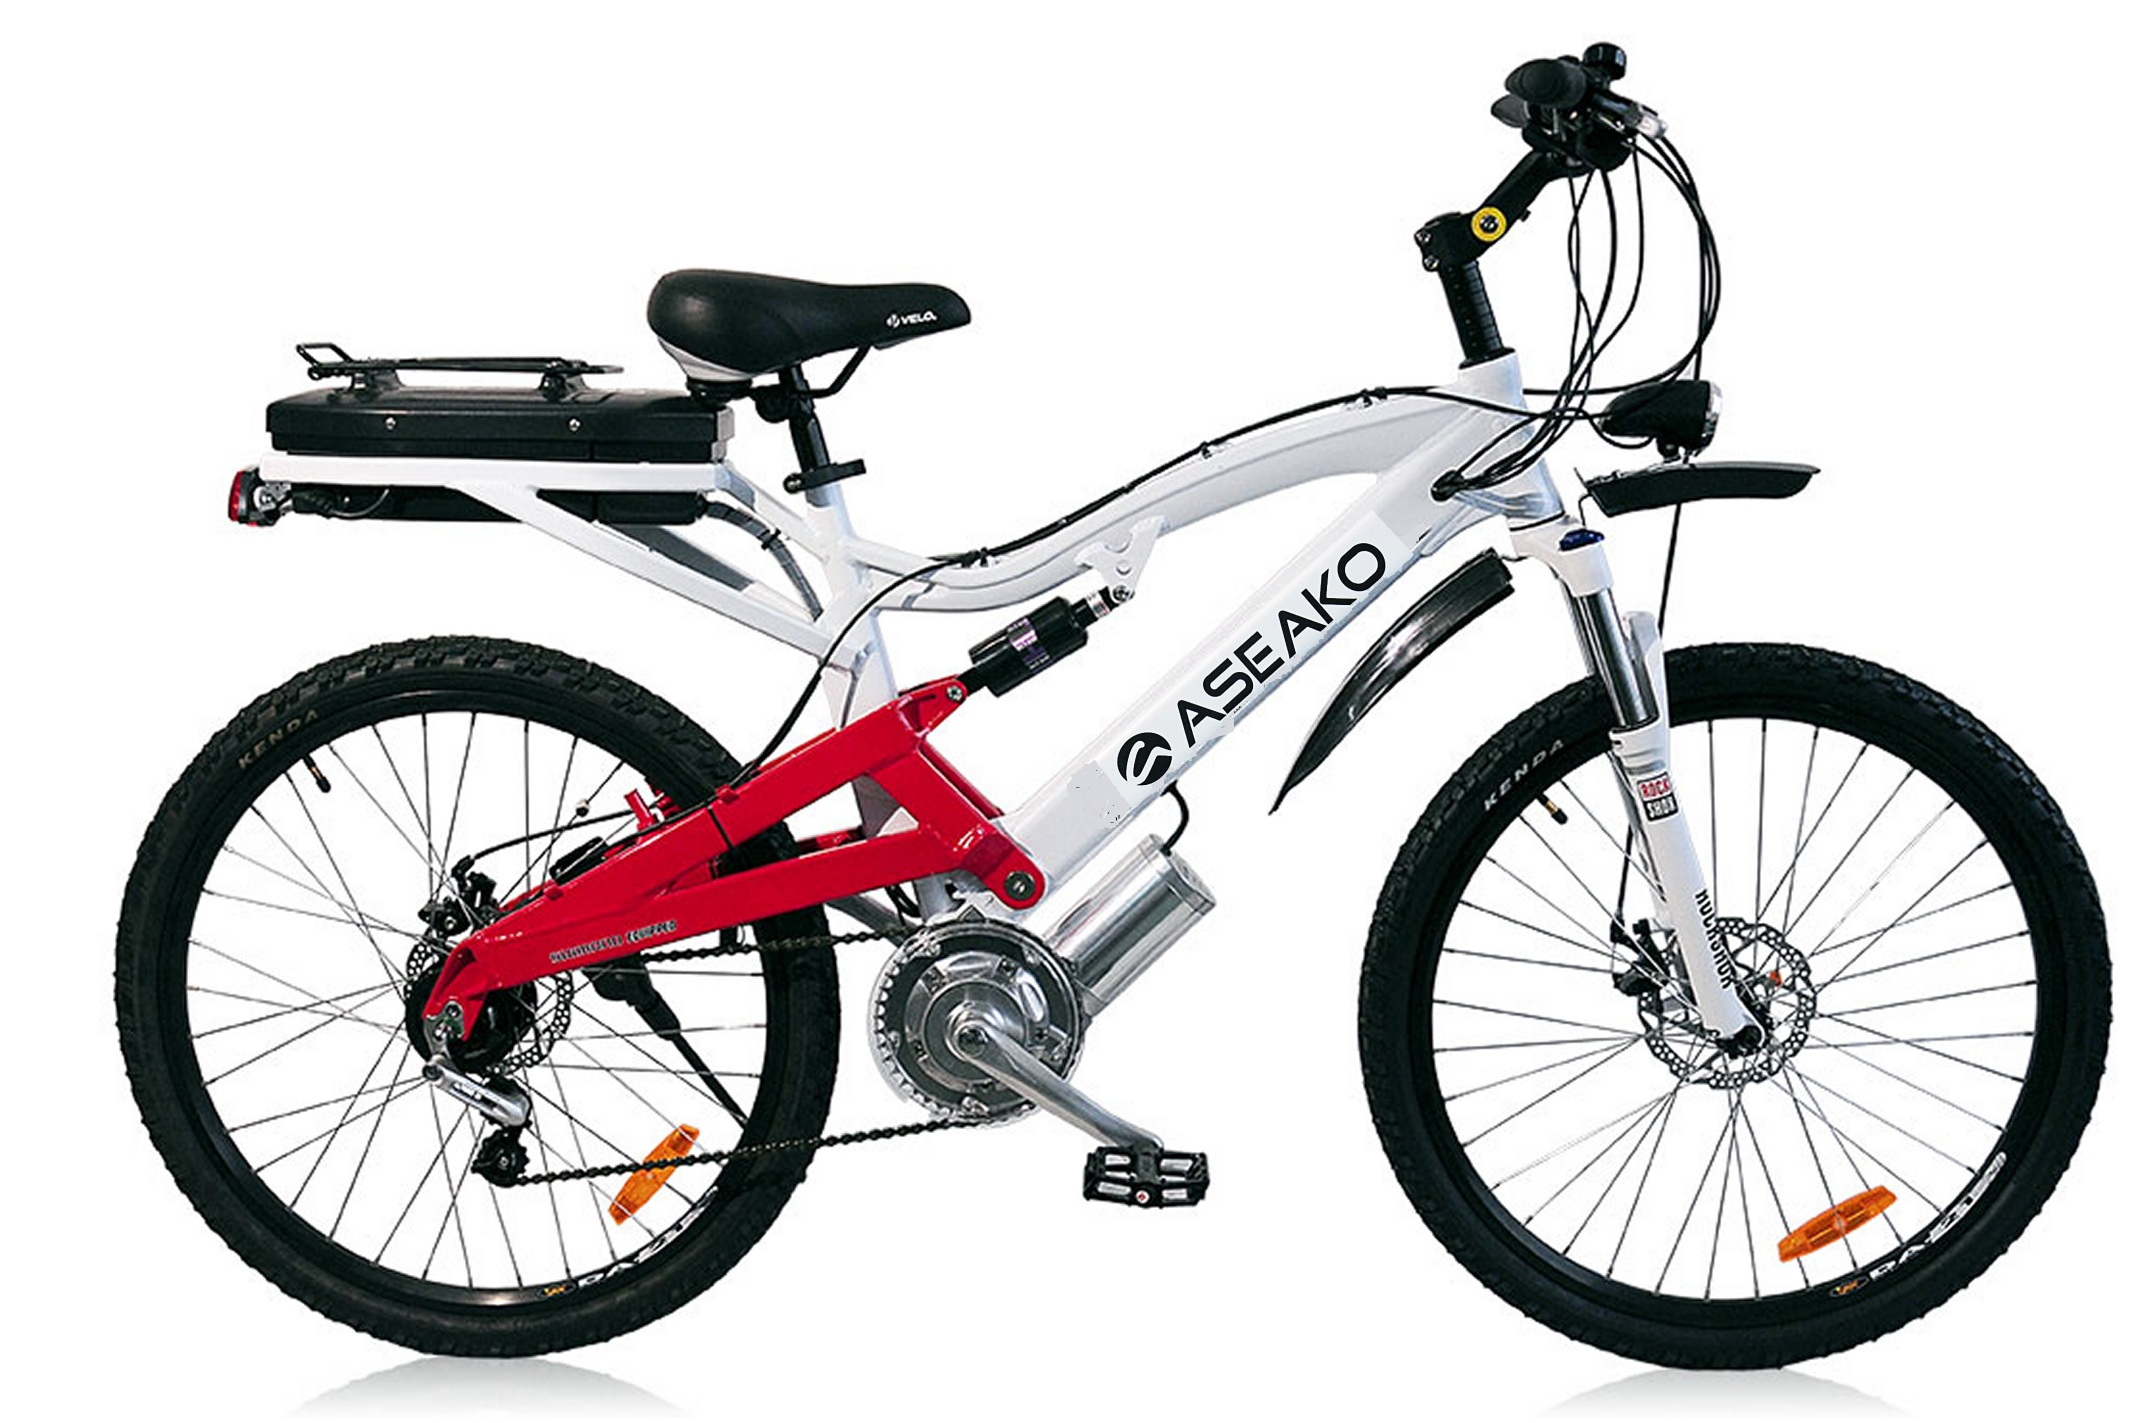 ASEAKO 250W ROSSA II ELECTRIC BIKE Nuvinci Optimised